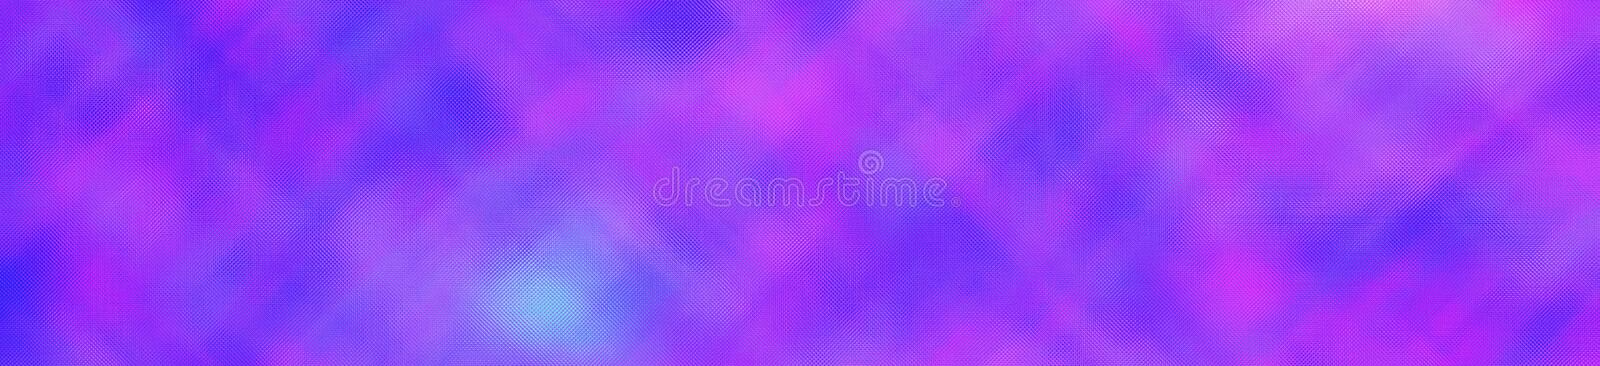 Purple and blue bright through Tiny Glass in banner shape background illustration. royalty free stock photo